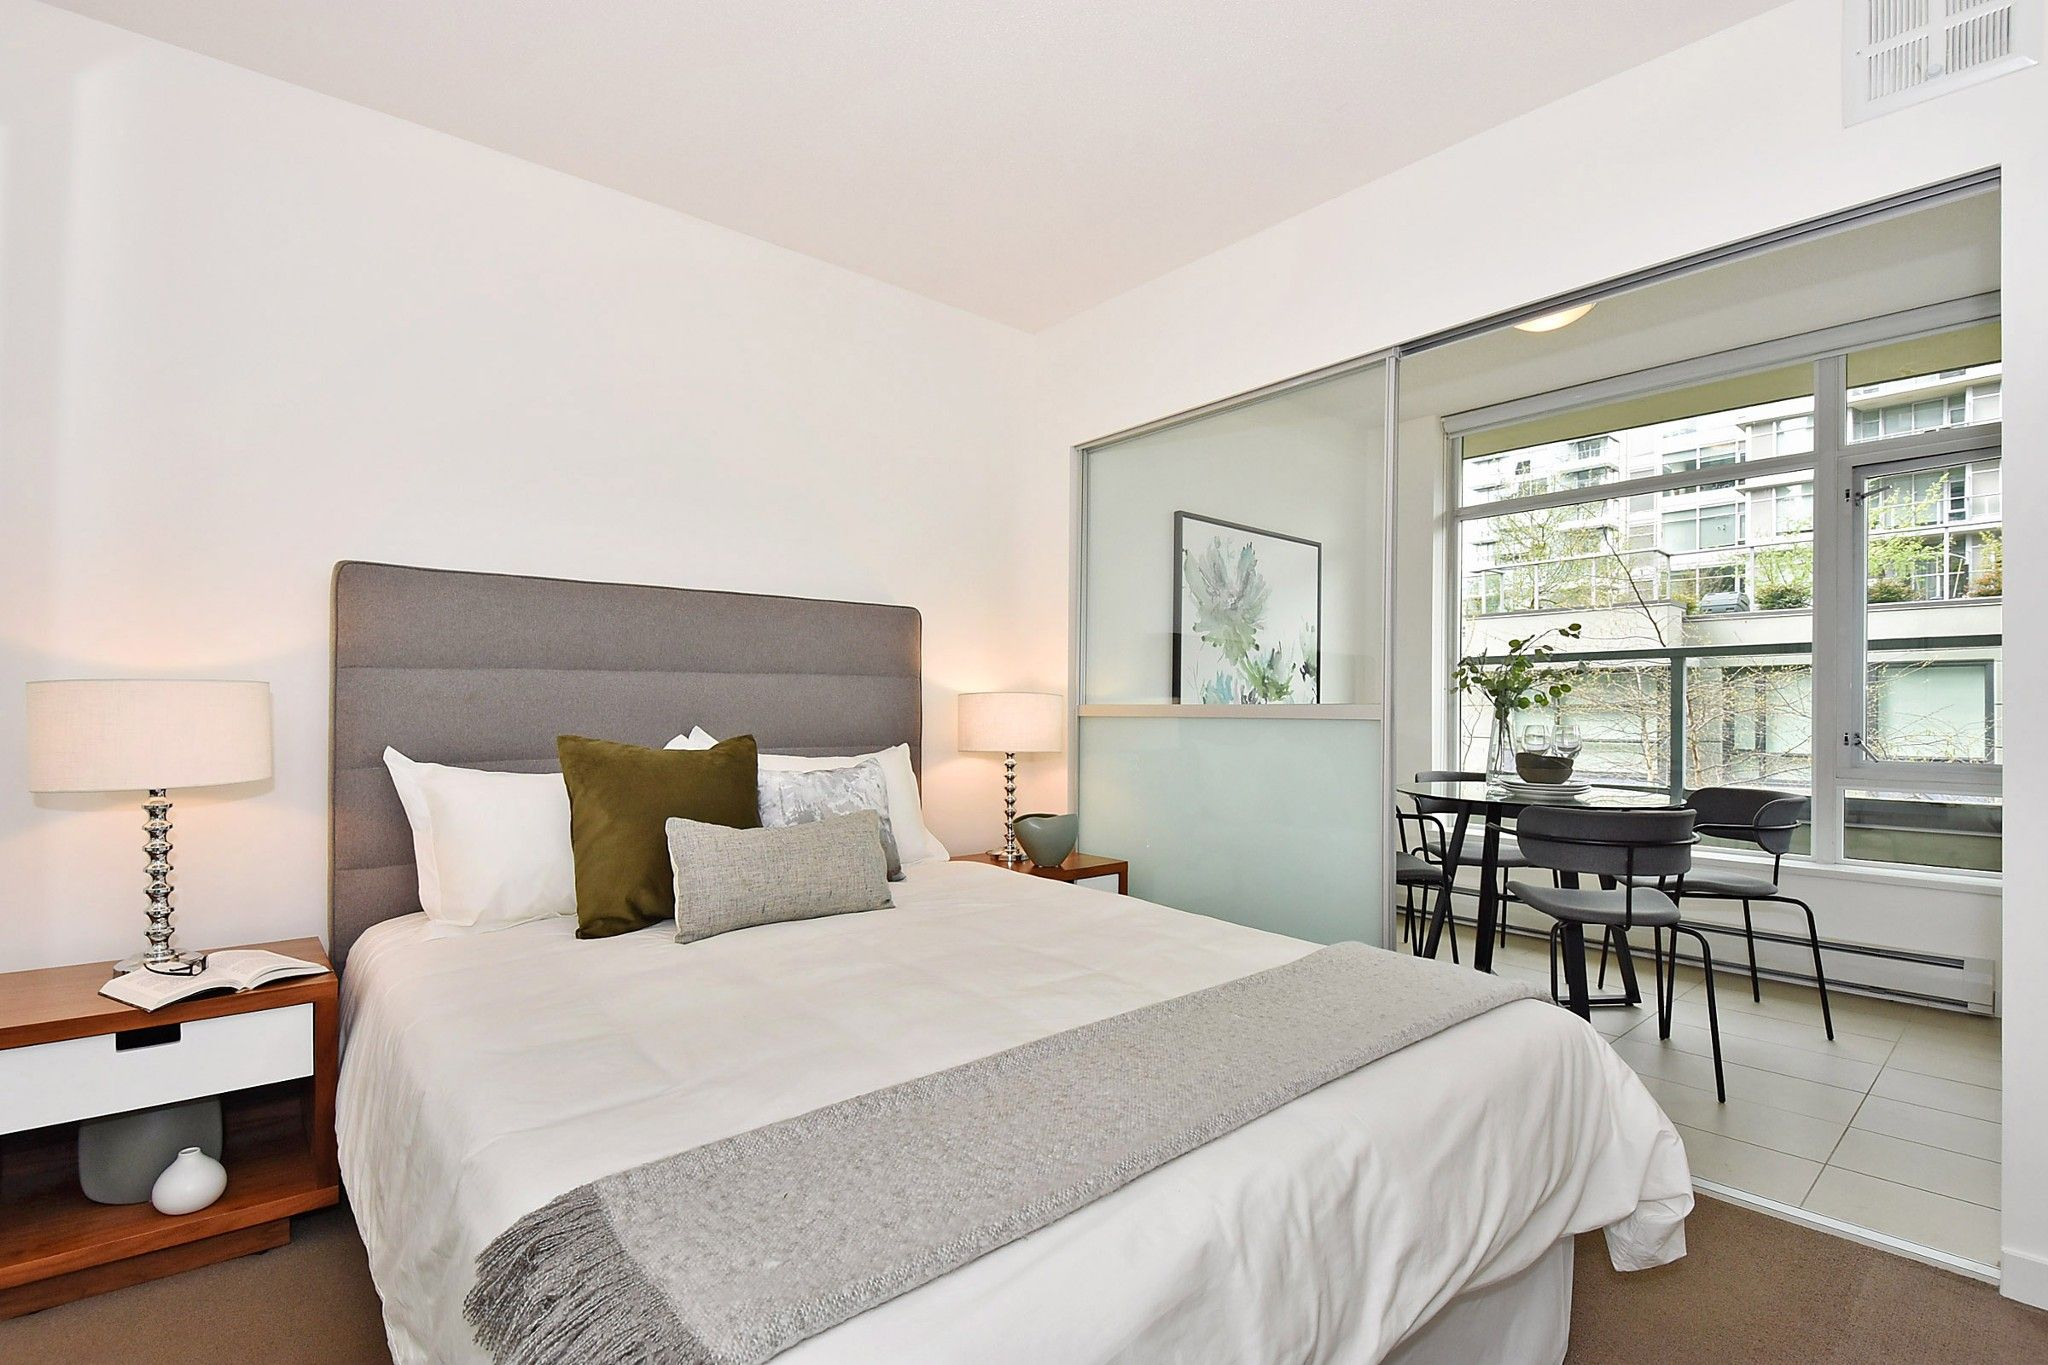 """Photo 13: Photos: 306 138 W 1ST Avenue in Vancouver: False Creek Condo for sale in """"WALL CENTRE FALSE CREEK"""" (Vancouver West)  : MLS®# R2360592"""